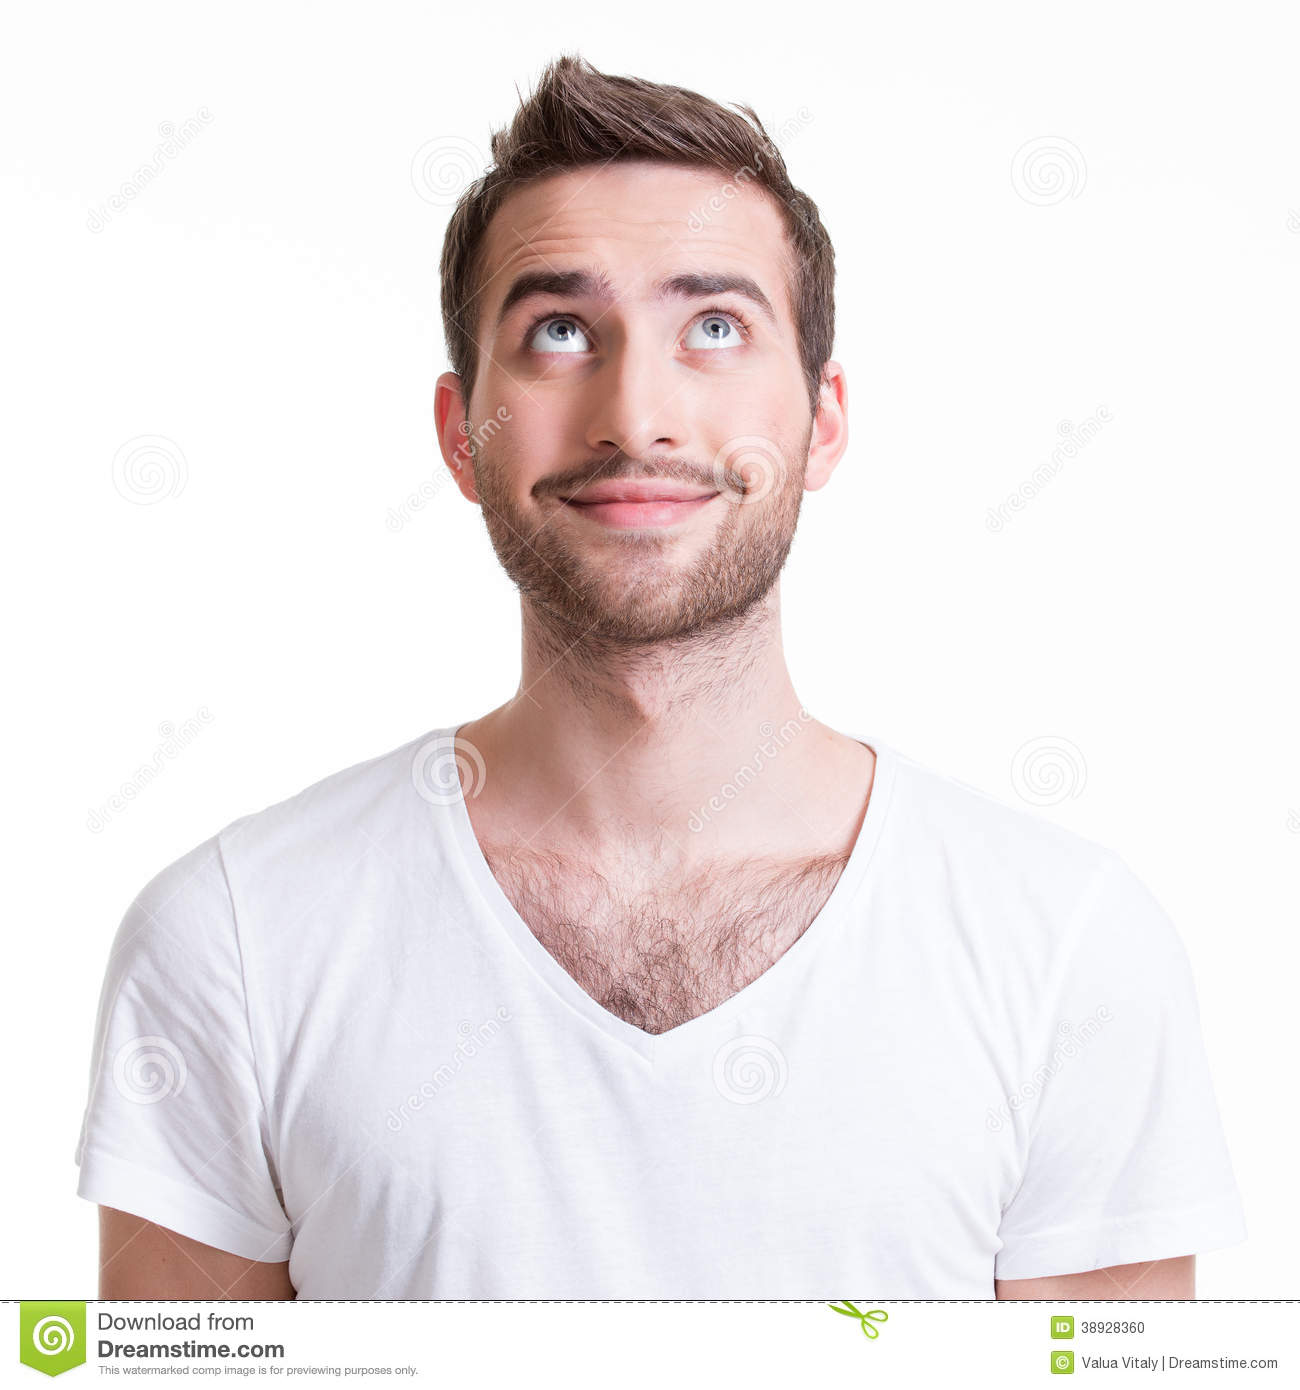 portrait-smiling-happy-young-man-looking-up-isolated-white-38928360.jpg